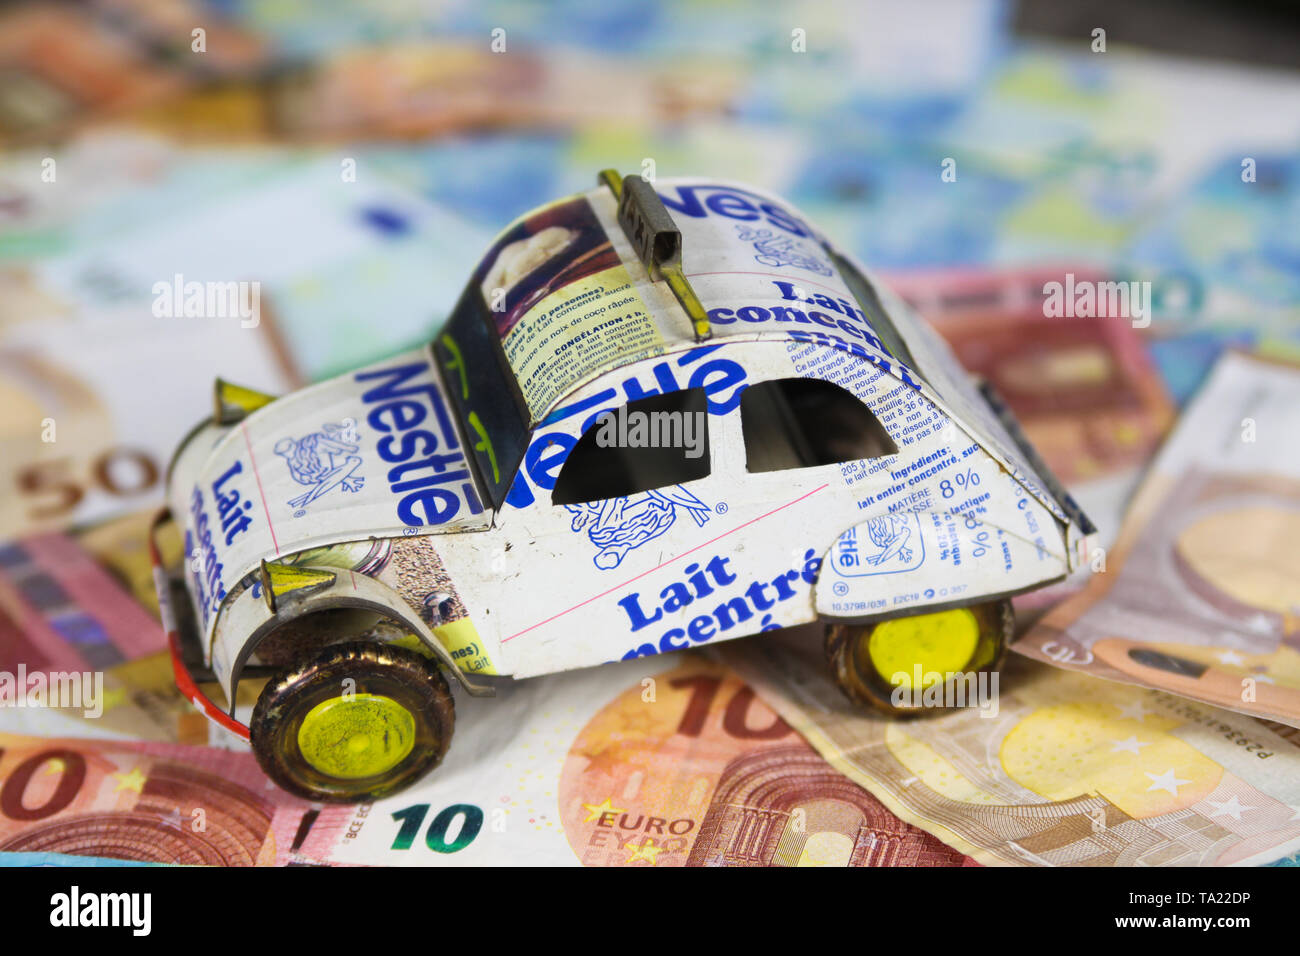 VIERSEN, GERMANY - MAY 20. 2019: Annual vehicle car cost concept - Model of car made of recycled cans on Euro paper money bank notes Stock Photo